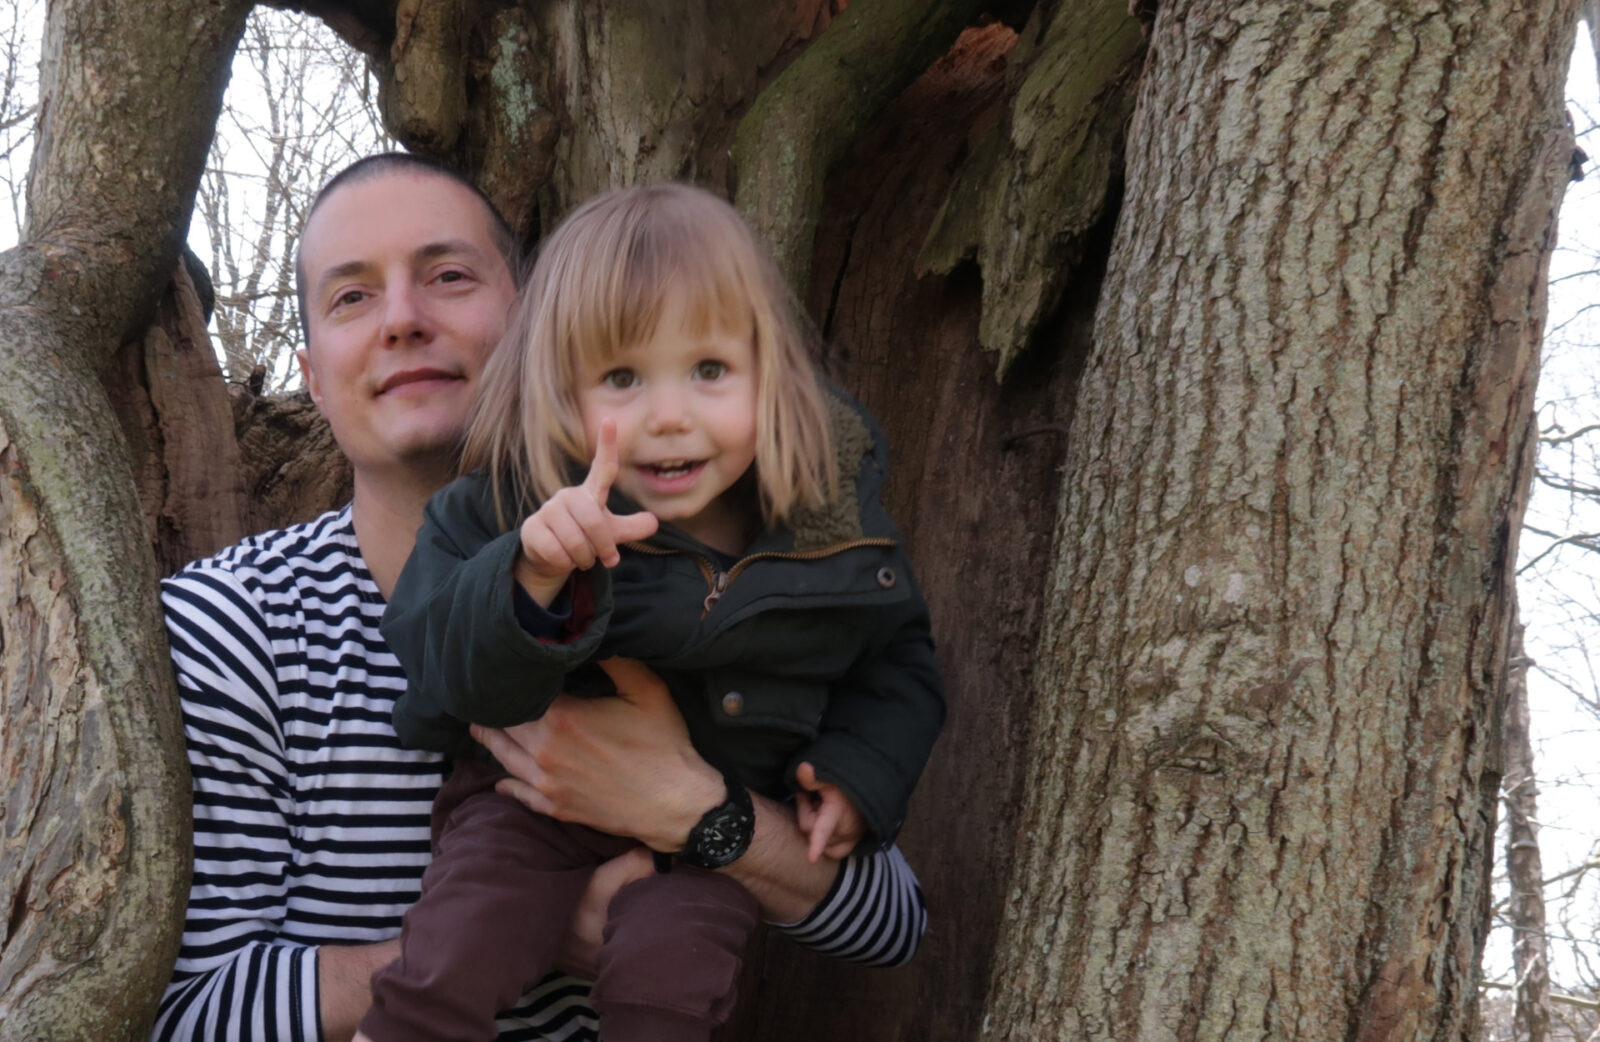 Sanjin and Aurelia inside a tree. Photo: Victoria Sinclair.